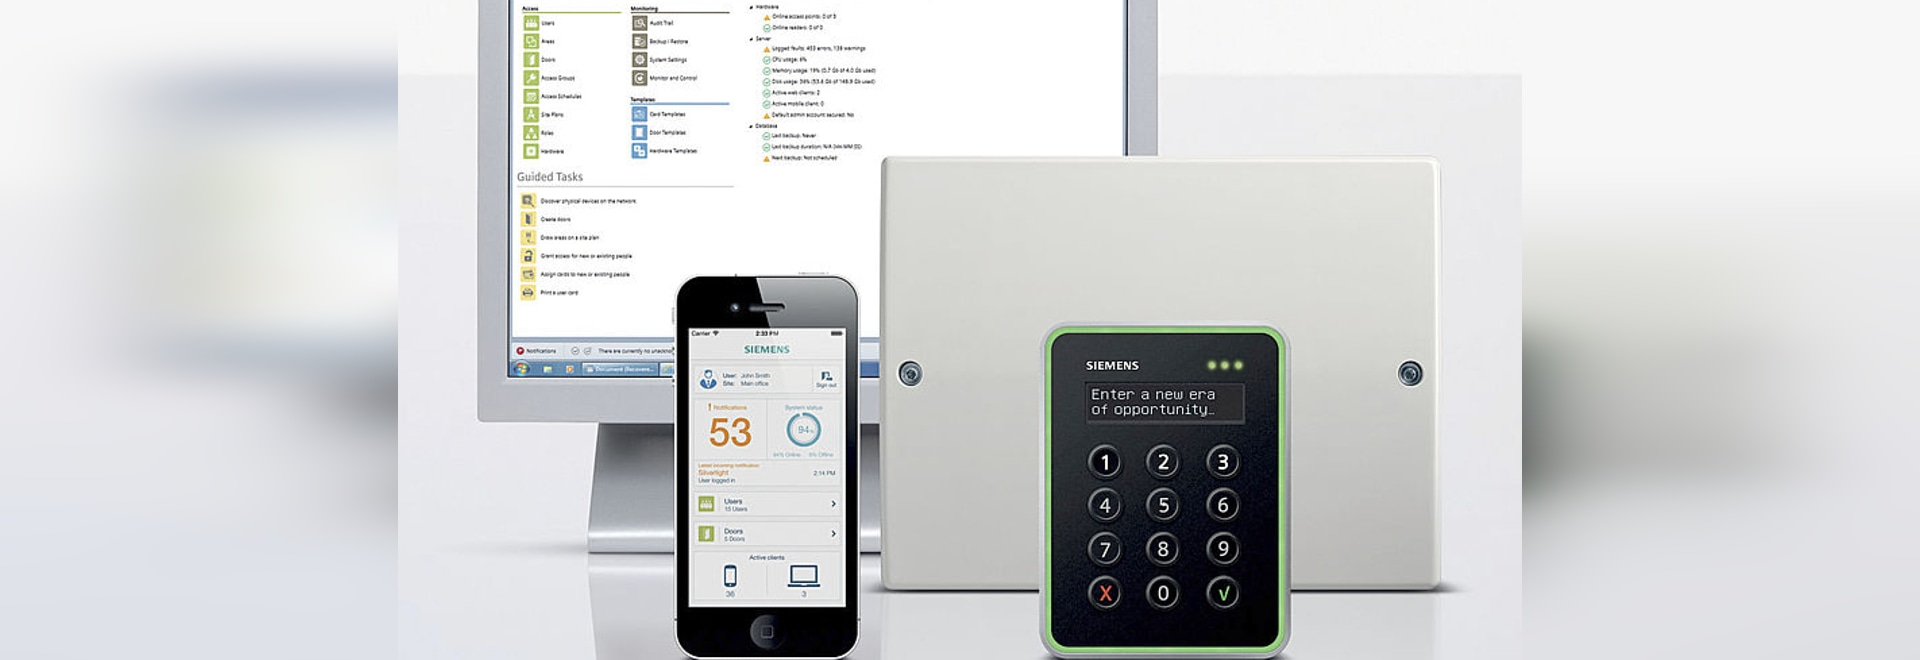 Aliro offers web-based access control for small and medium-sized businesses